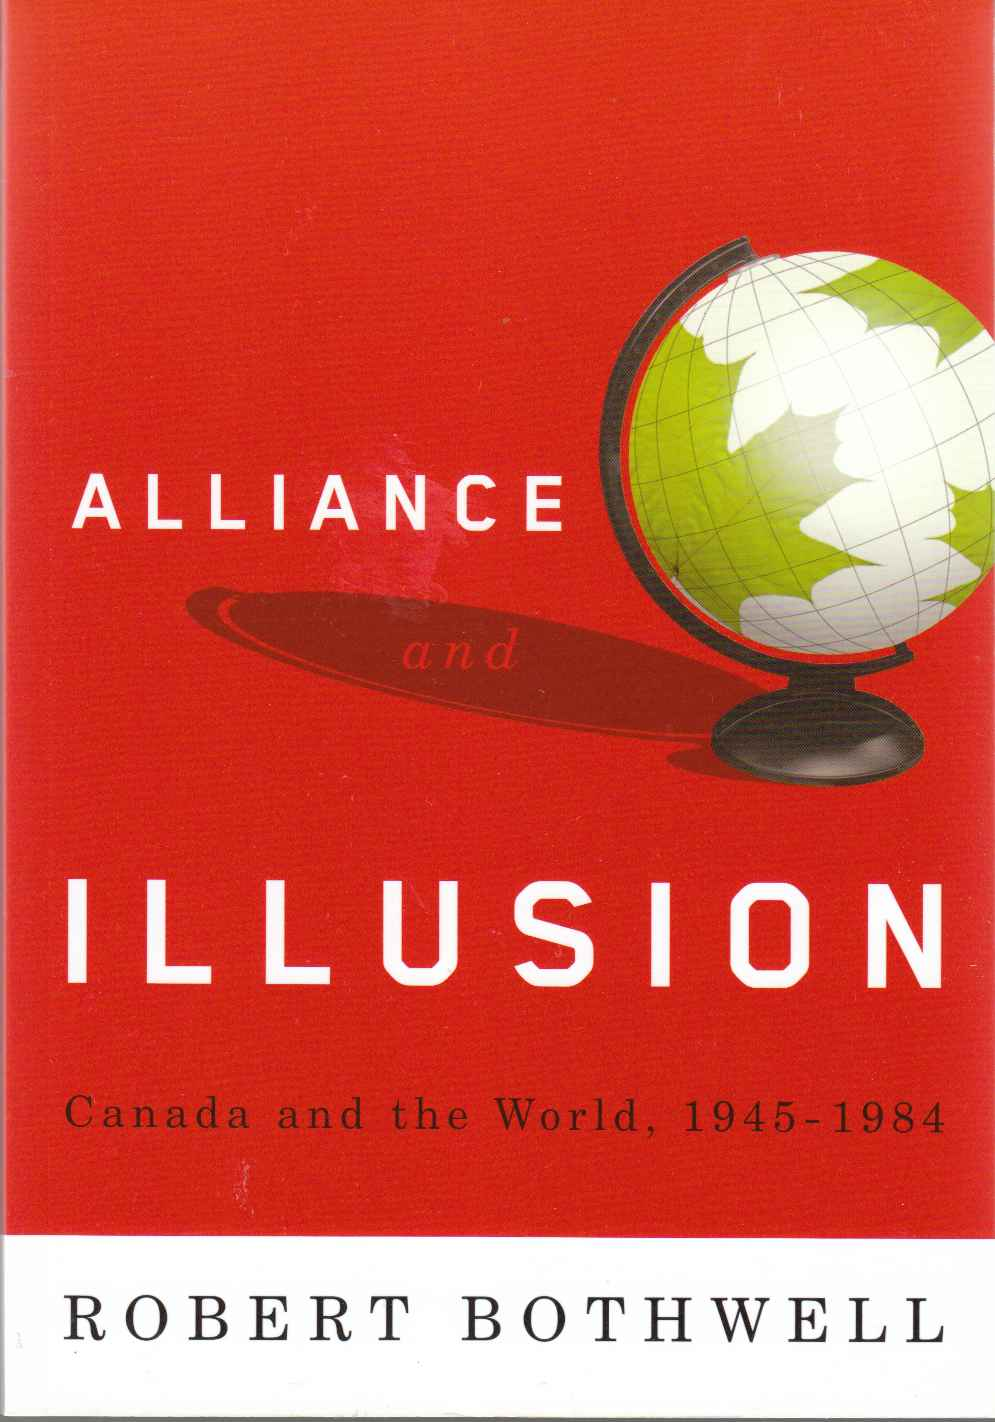 Image for Alliance and Illusion Canada and the World, 1945-1984